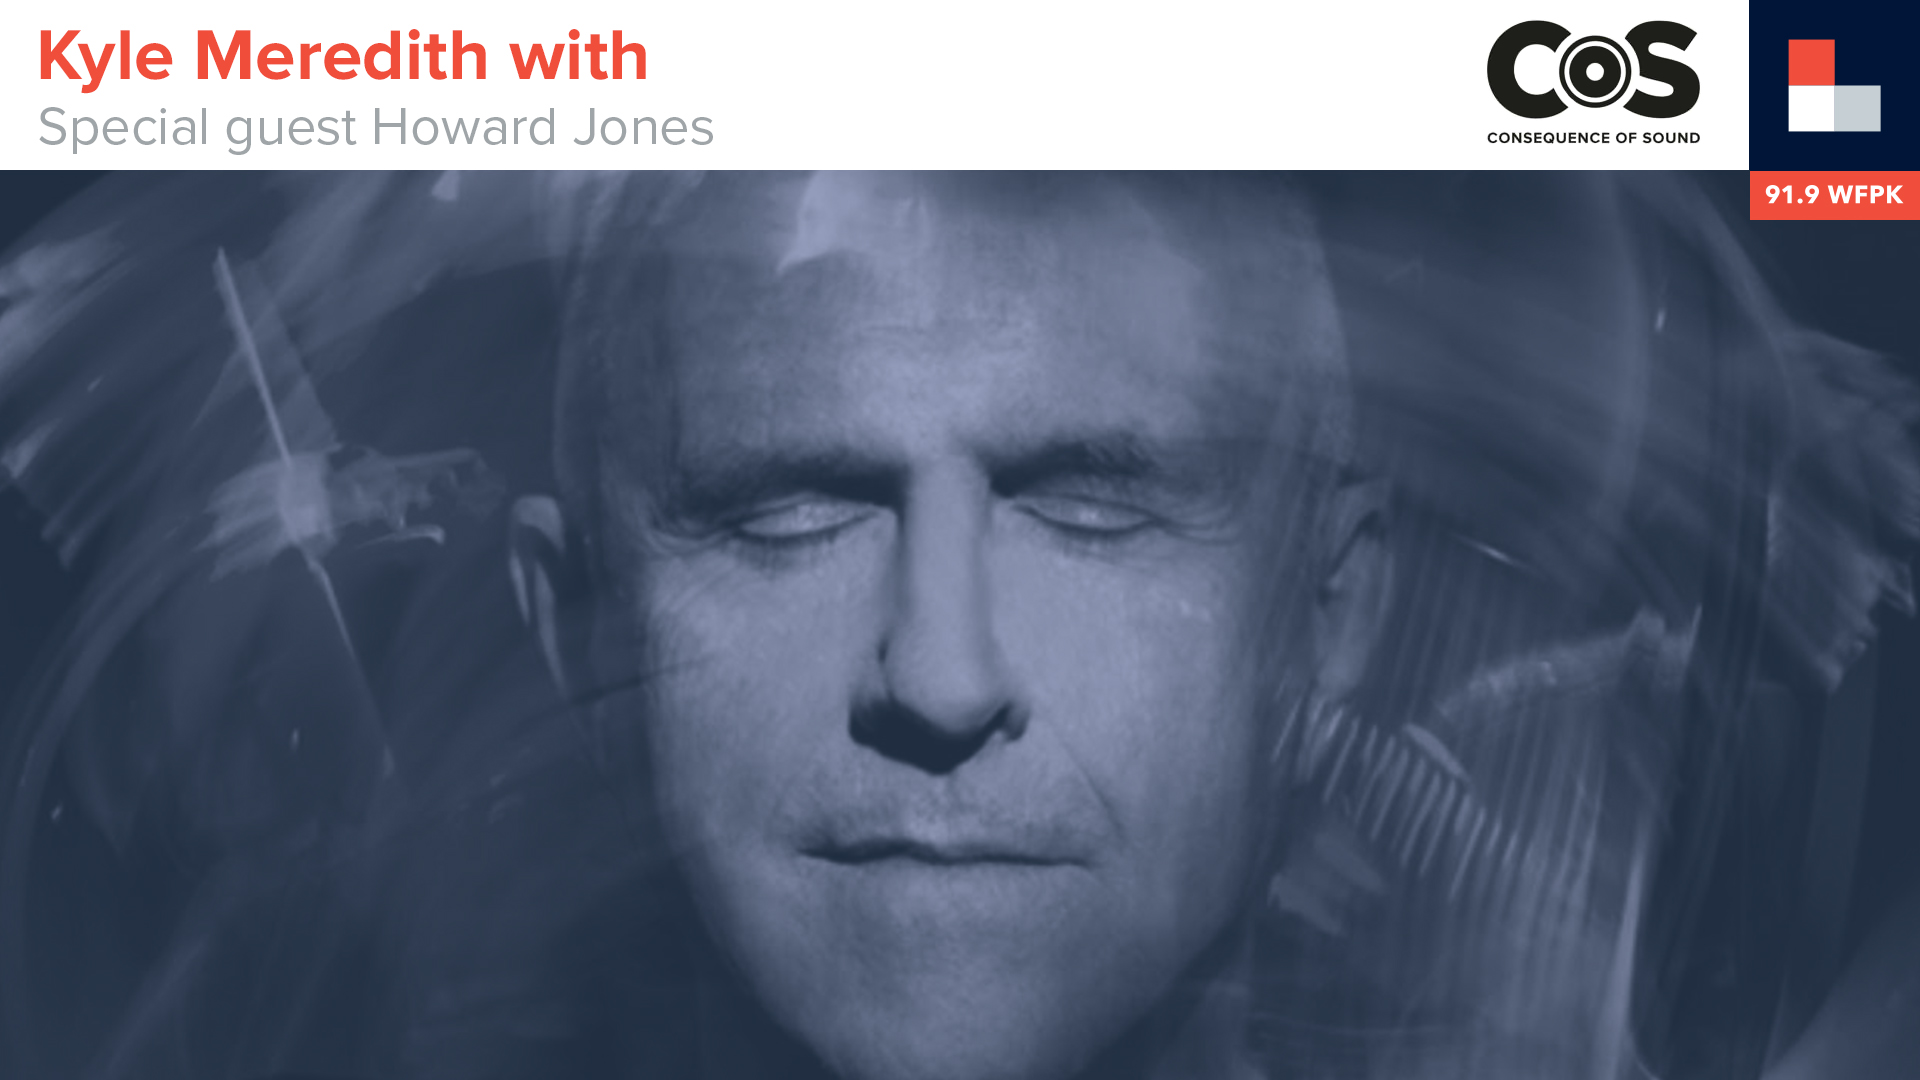 Howard Jones, Kyle Meredith With... feature image